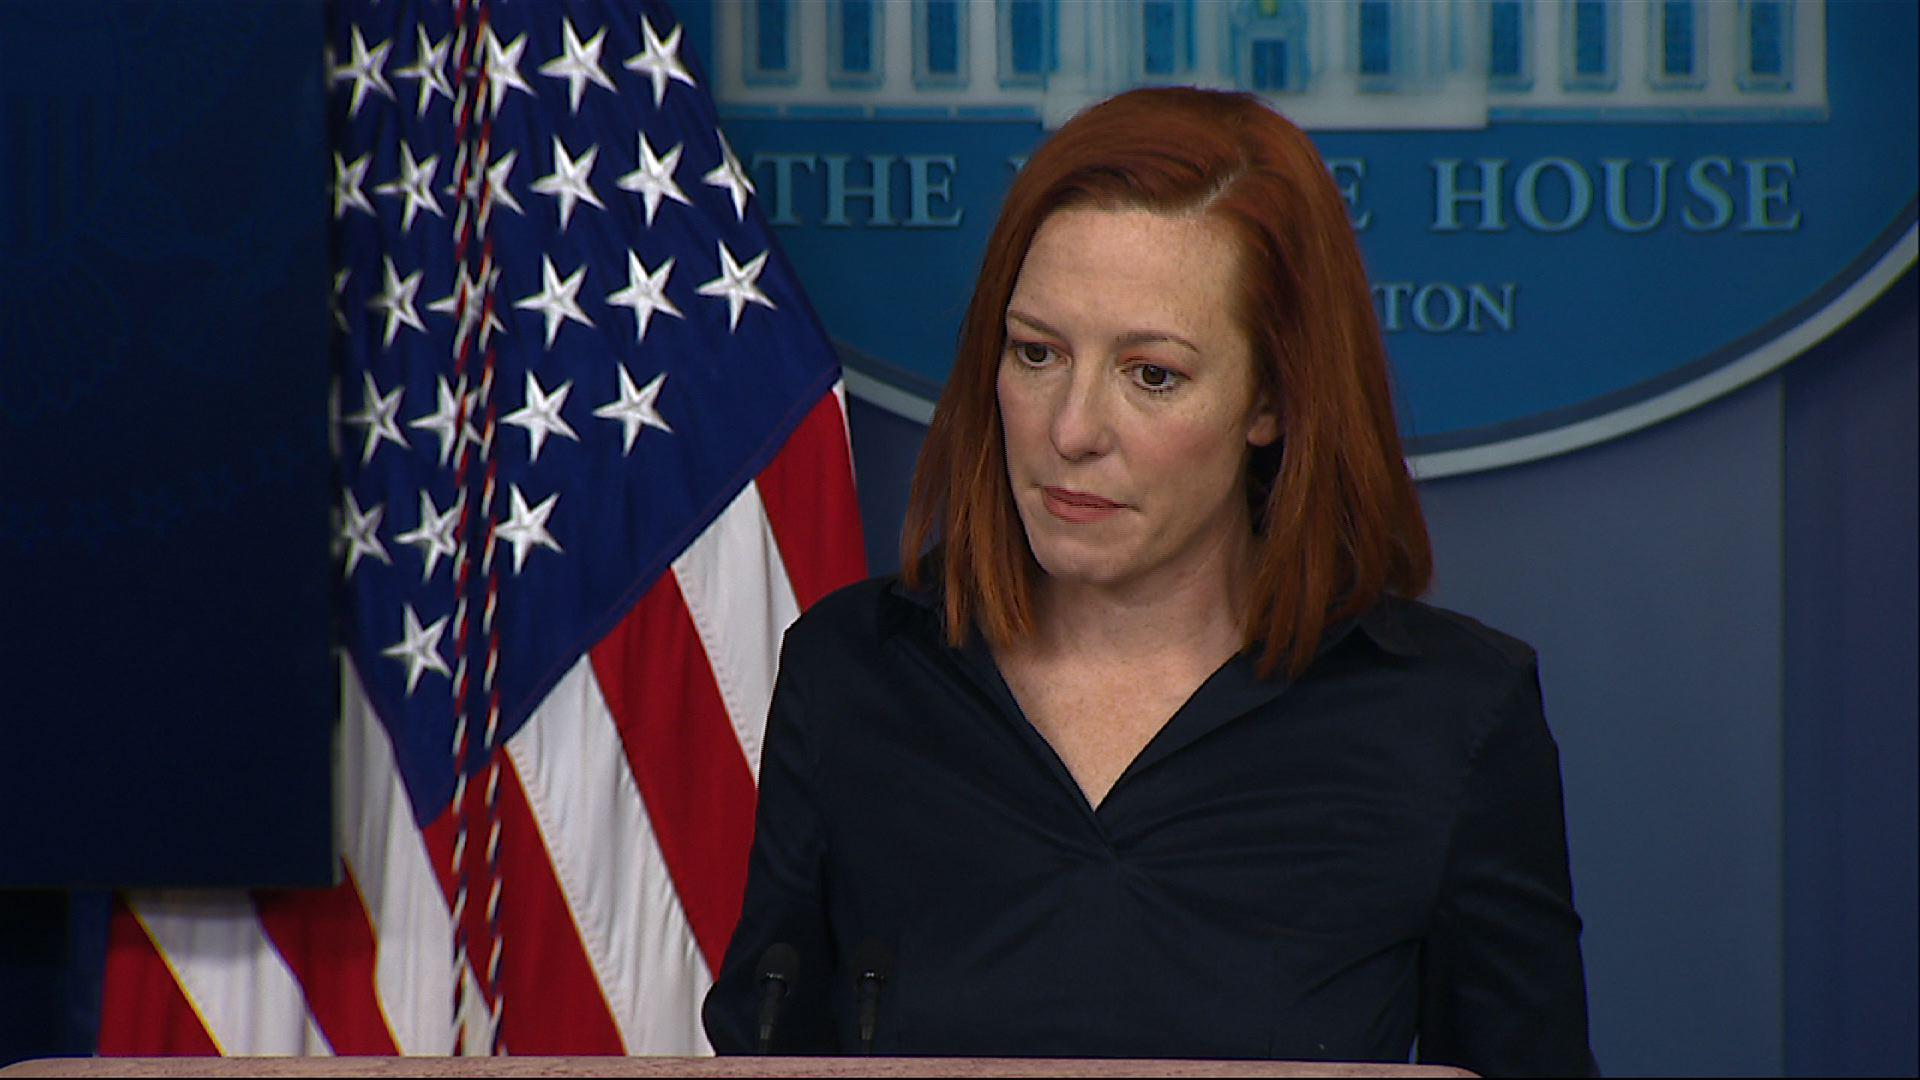 White House press secretary Jen Psaki refused to give credit to the Trump administration for recent progress in the COVID-19 vaccine rollout, saying no one